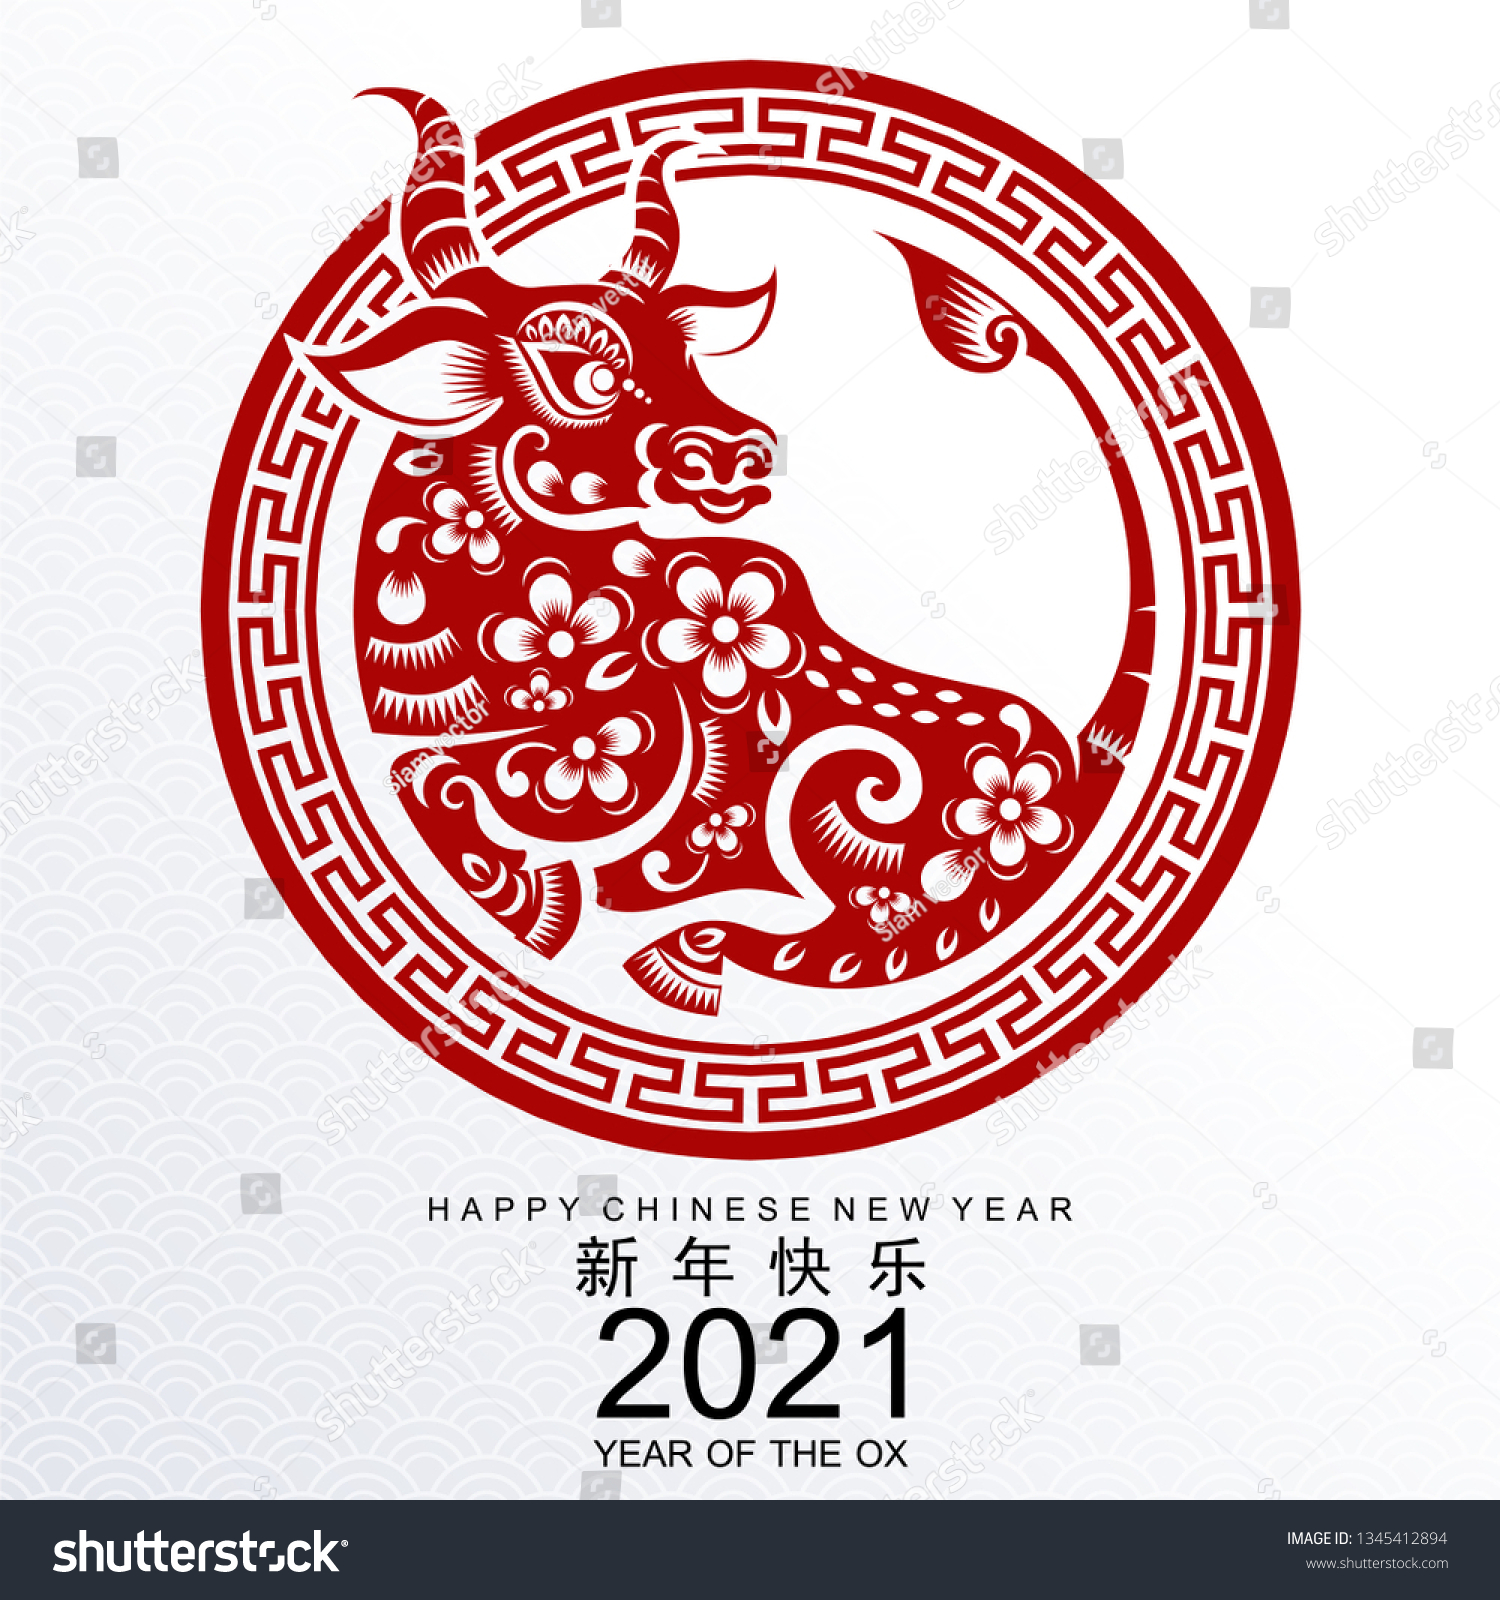 chinese new year 2021 year ox stock vector royalty free 1345412894 https www shutterstock com image vector chinese new year 2021 ox red 1345412894